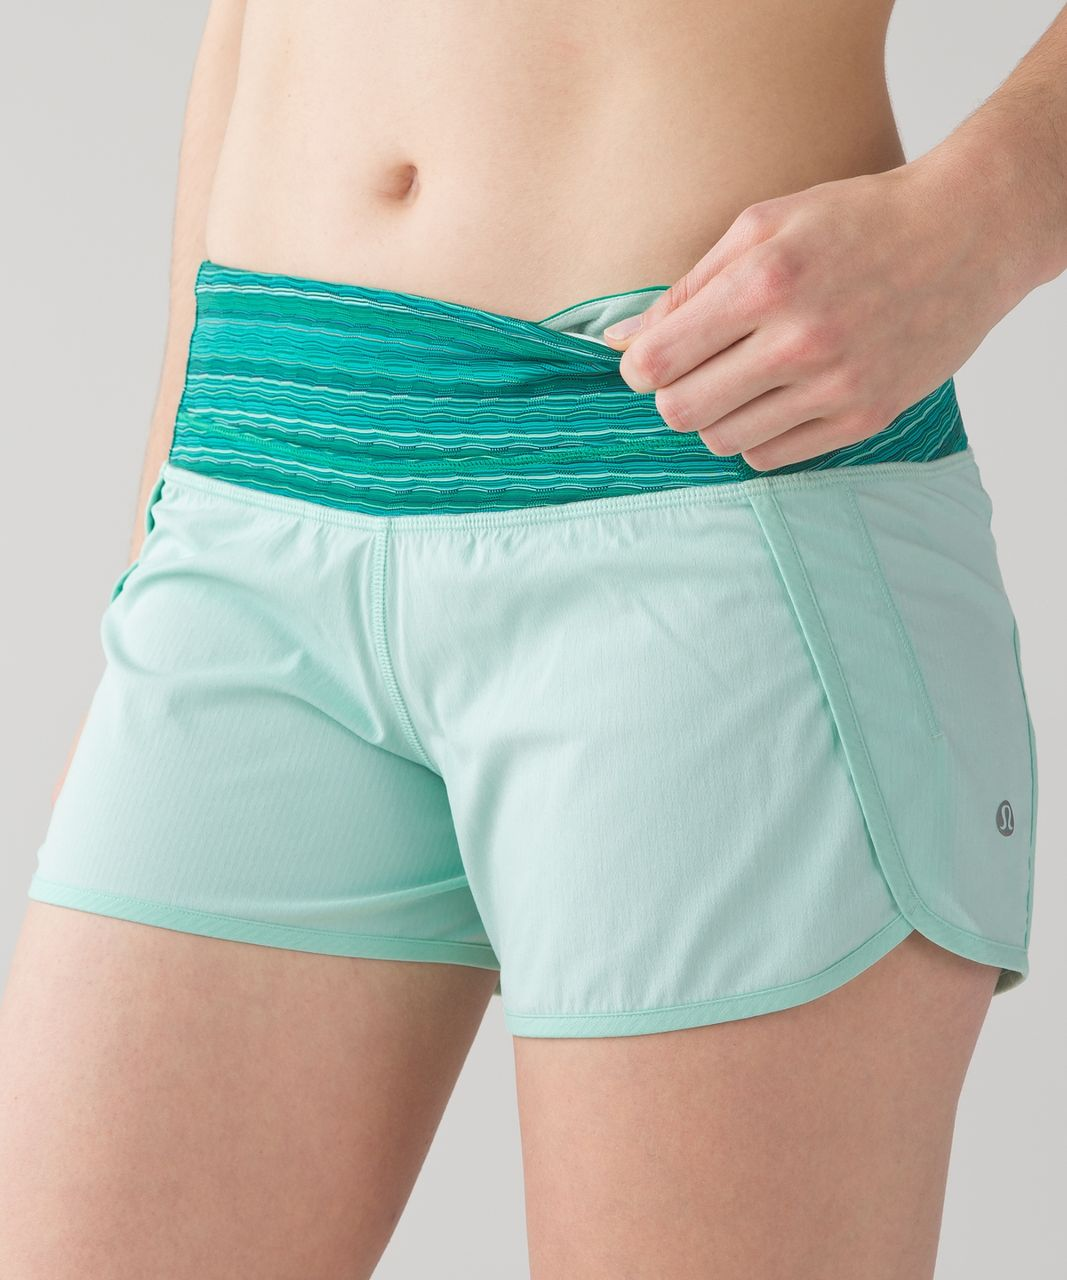 Lululemon Run Times Short - Sea Mist / Wave Twist Jungle Hero Blue